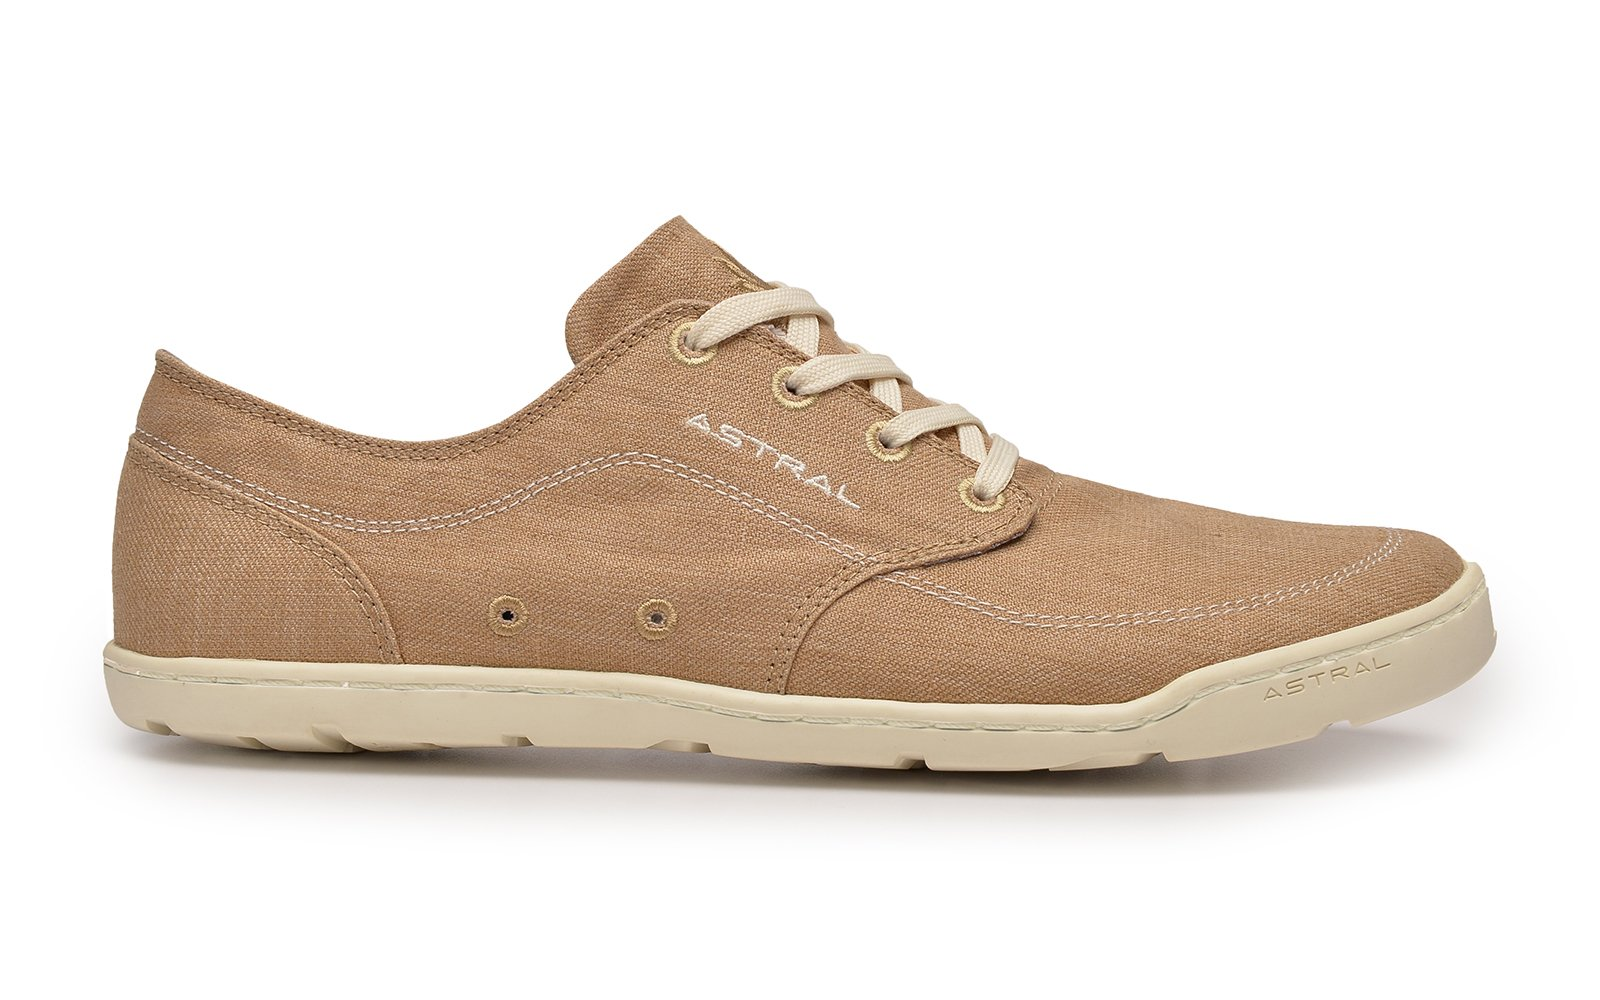 Astral Hemp Loyak Unisex Shoes in Desert Khaki - copy